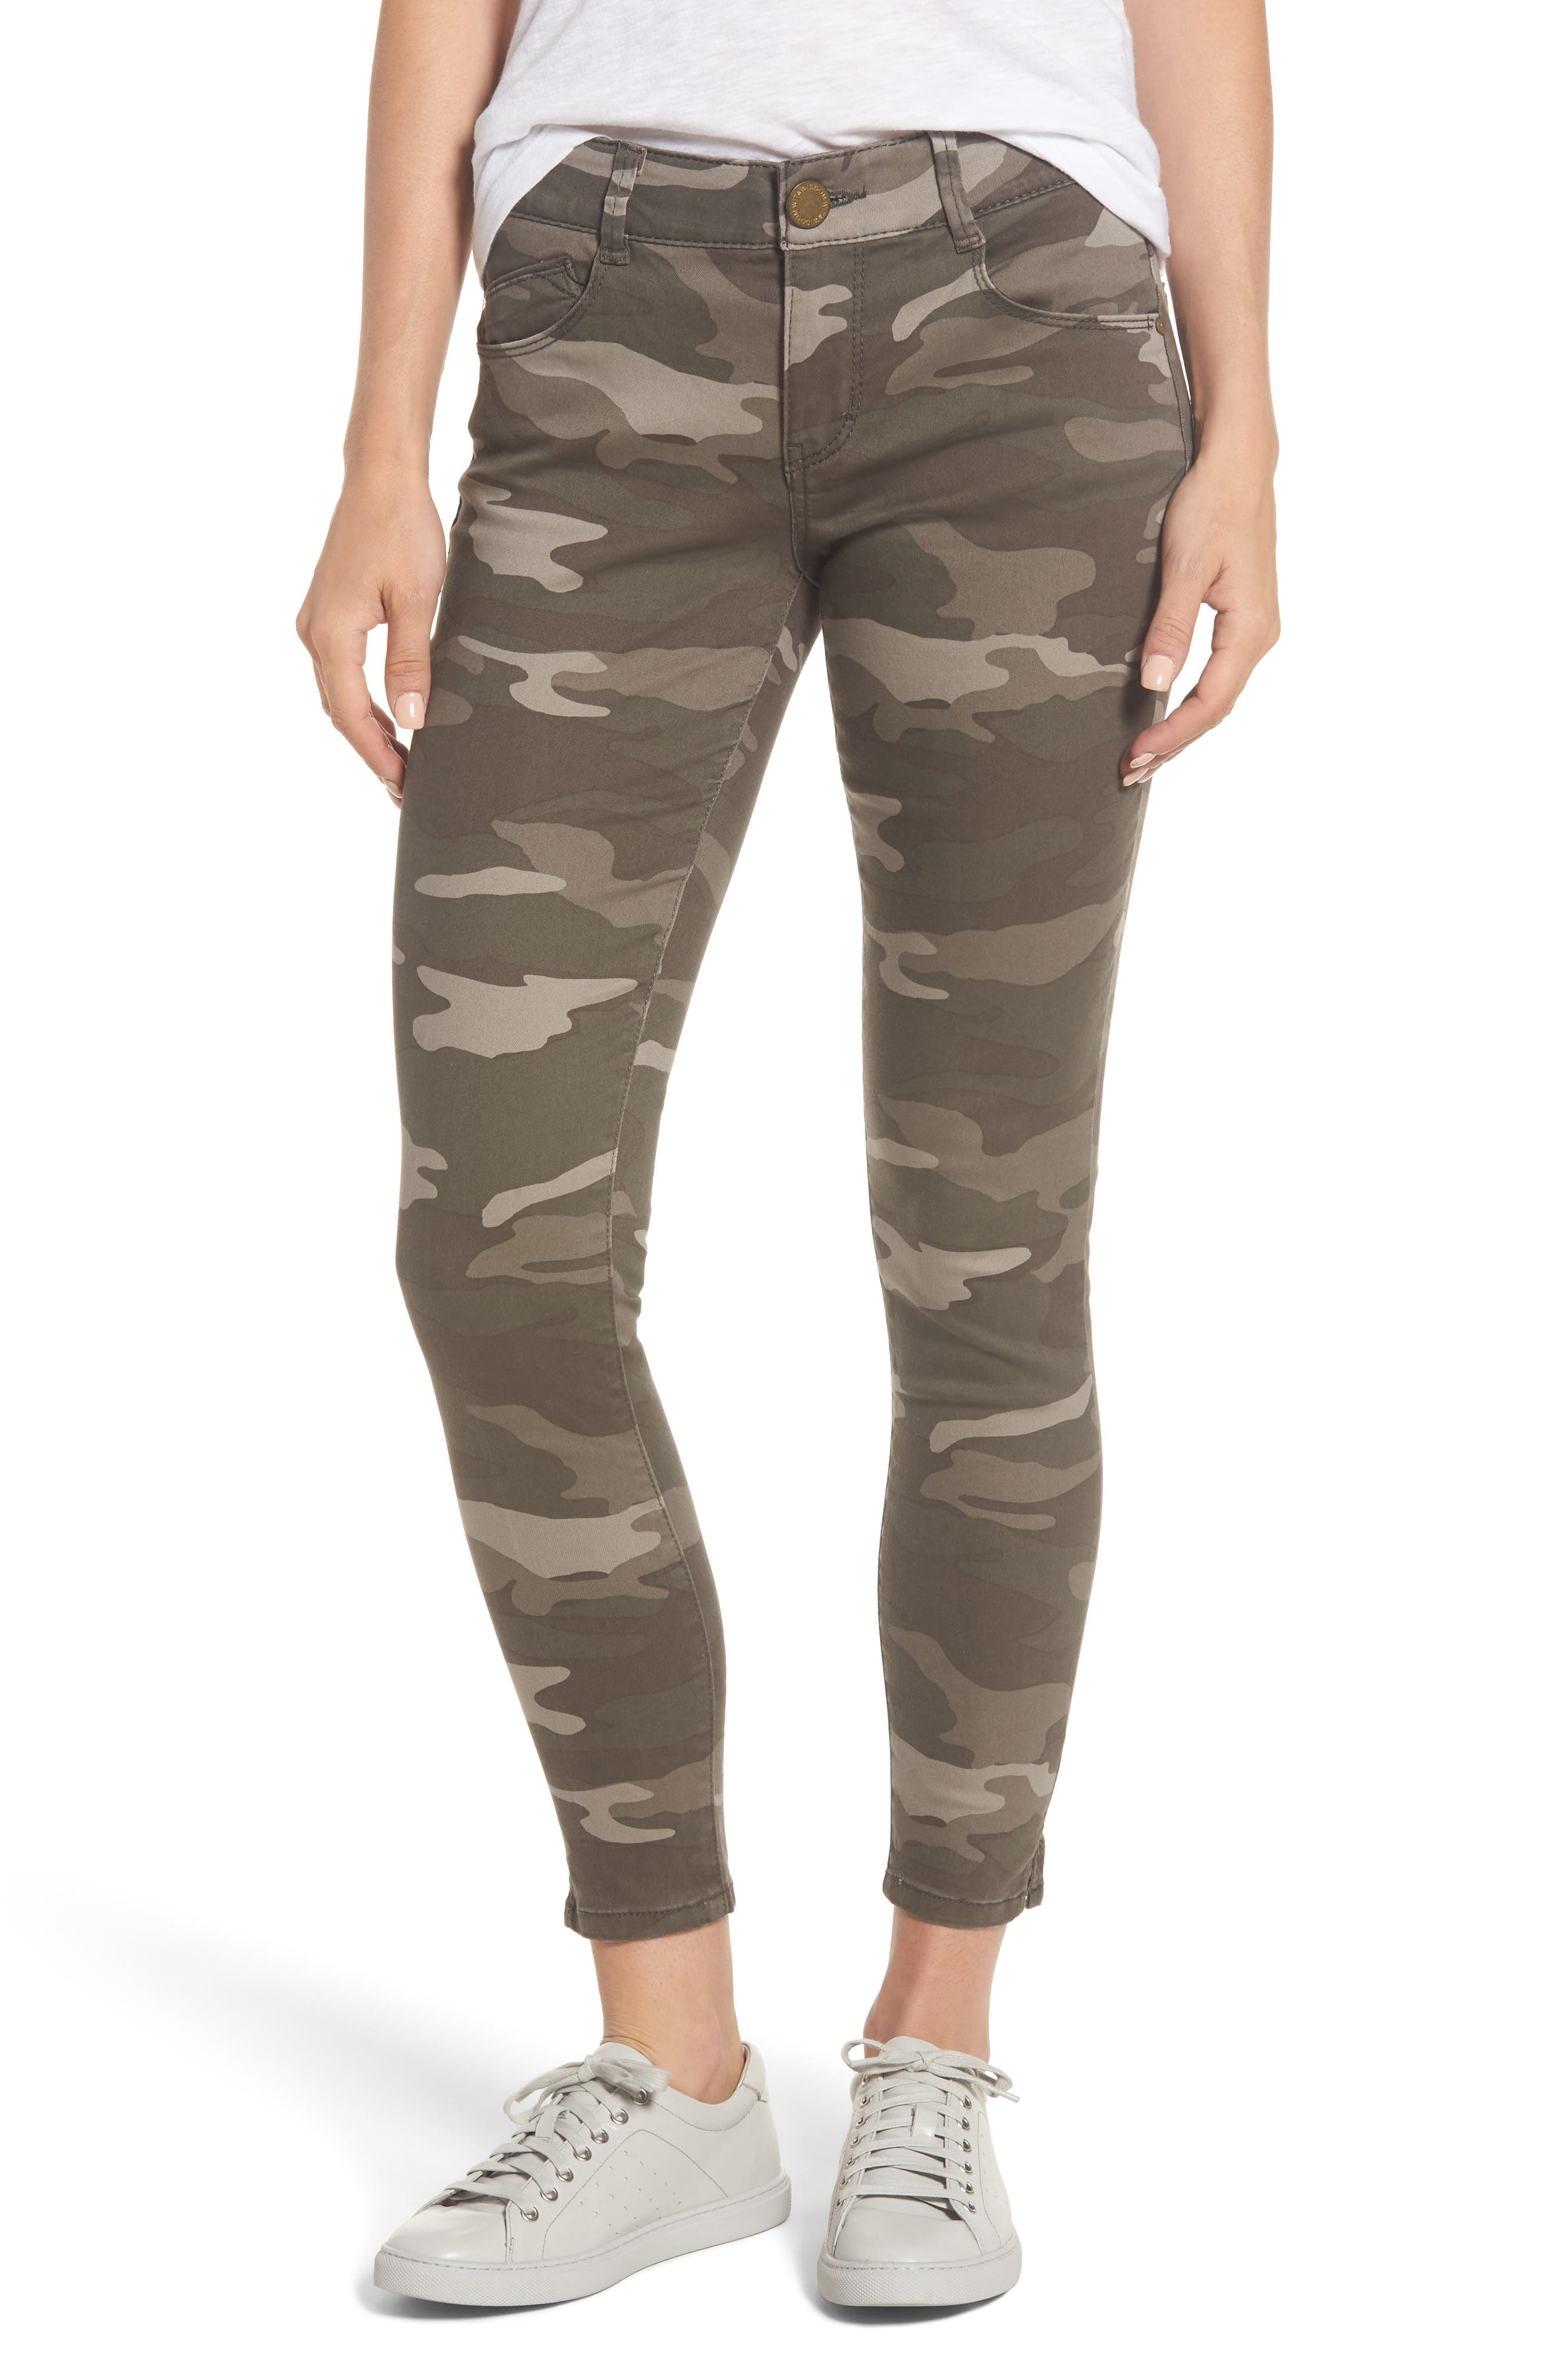 Main Image - Wit & Wisdom Ab-solution Camo Stretch Ankle Skinny Jeans (Nordstrom Exclusive) (Regular & Petite)